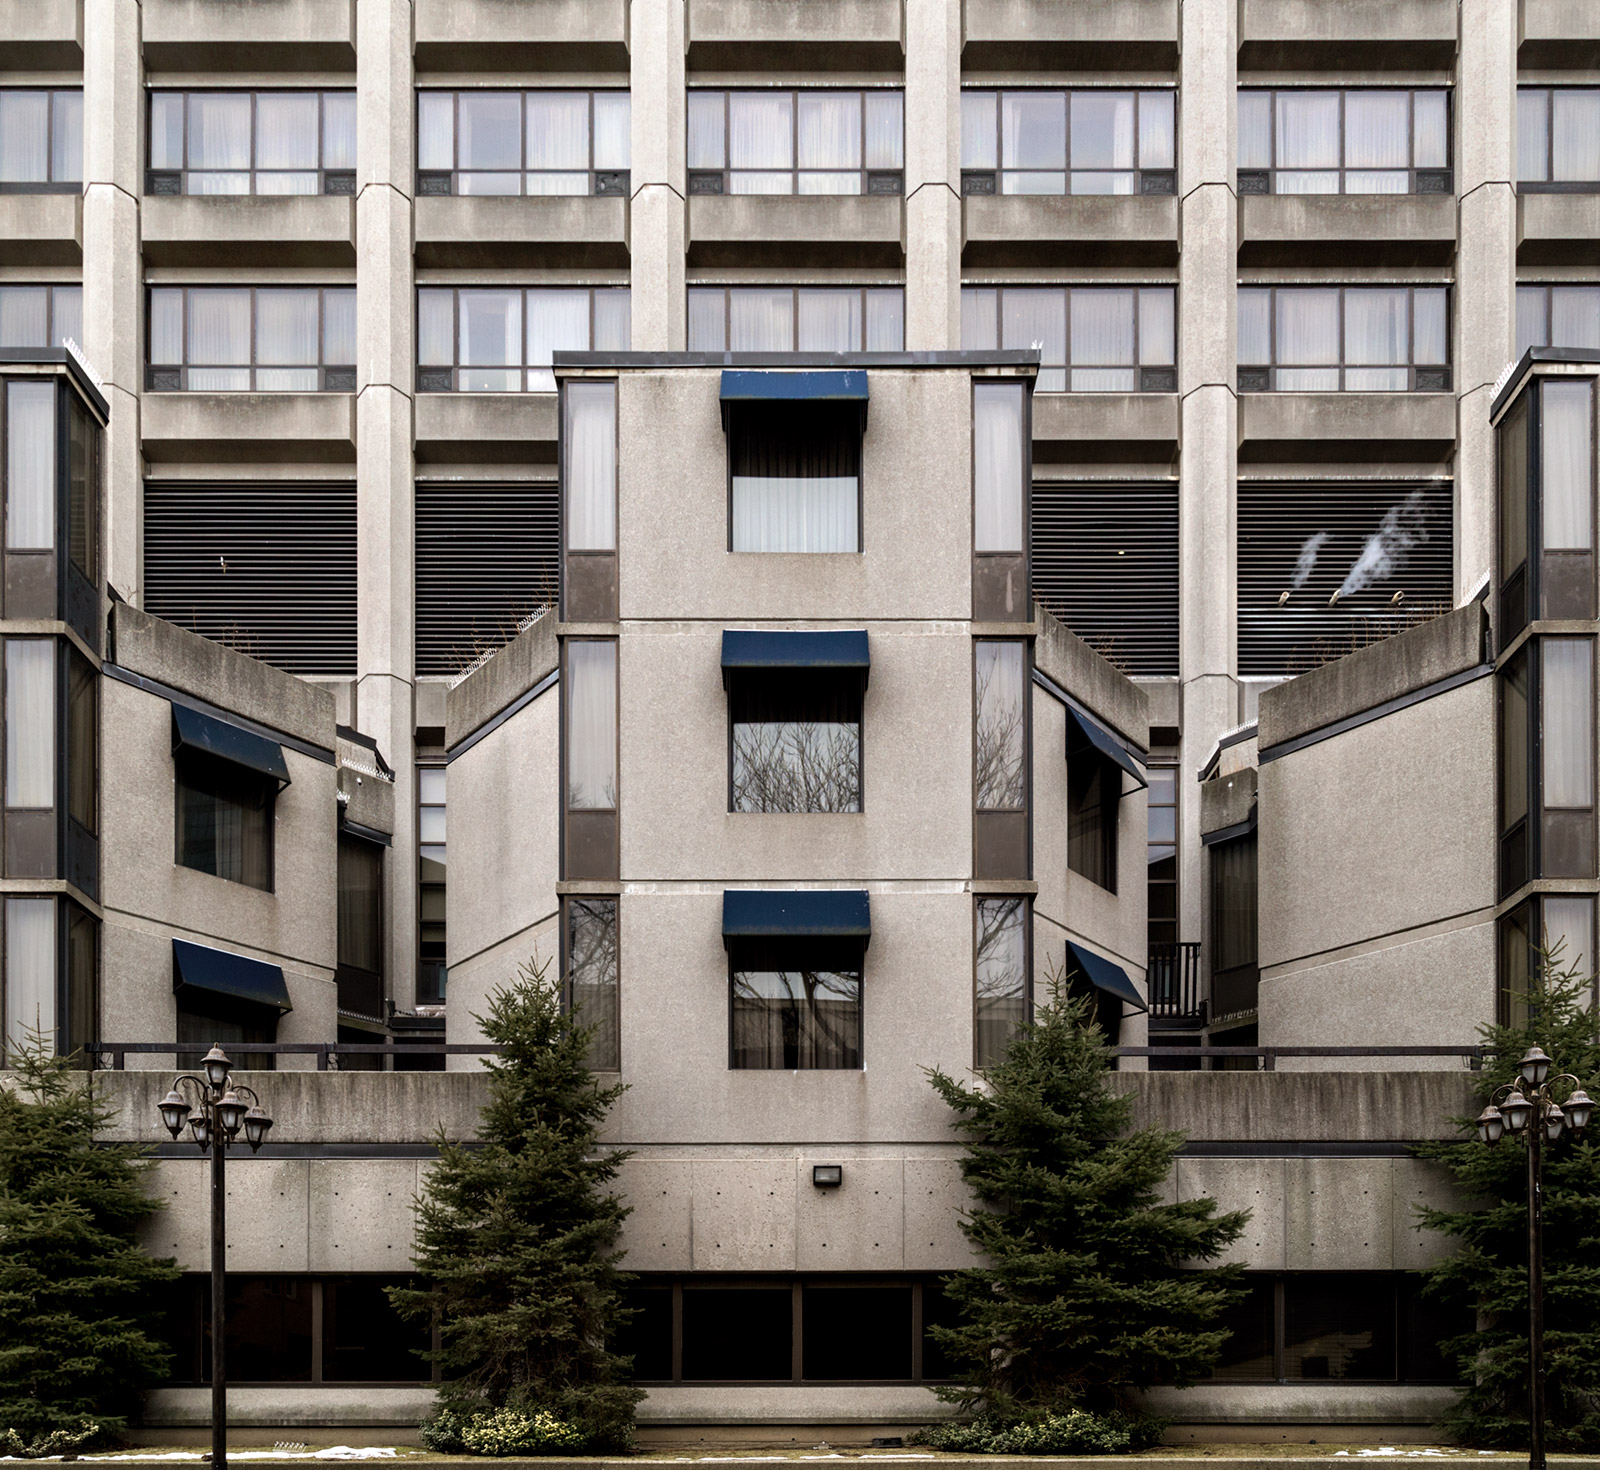 20150316.  Brutalism at The Grand Hotel and former RCMP Toronto